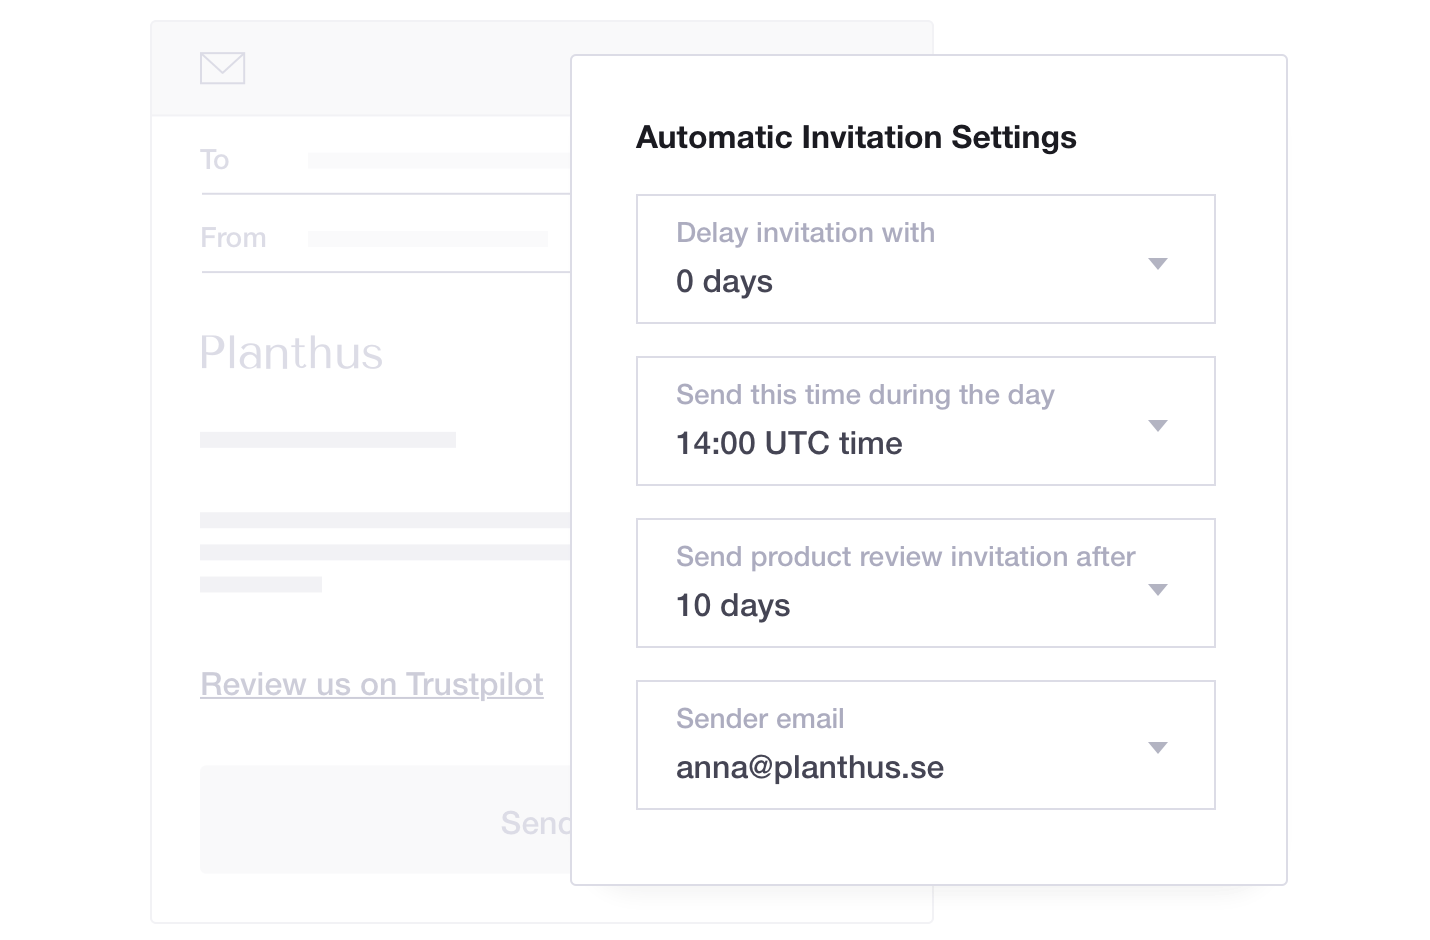 Trustpilot Automatic Invitation Settings - Planthus